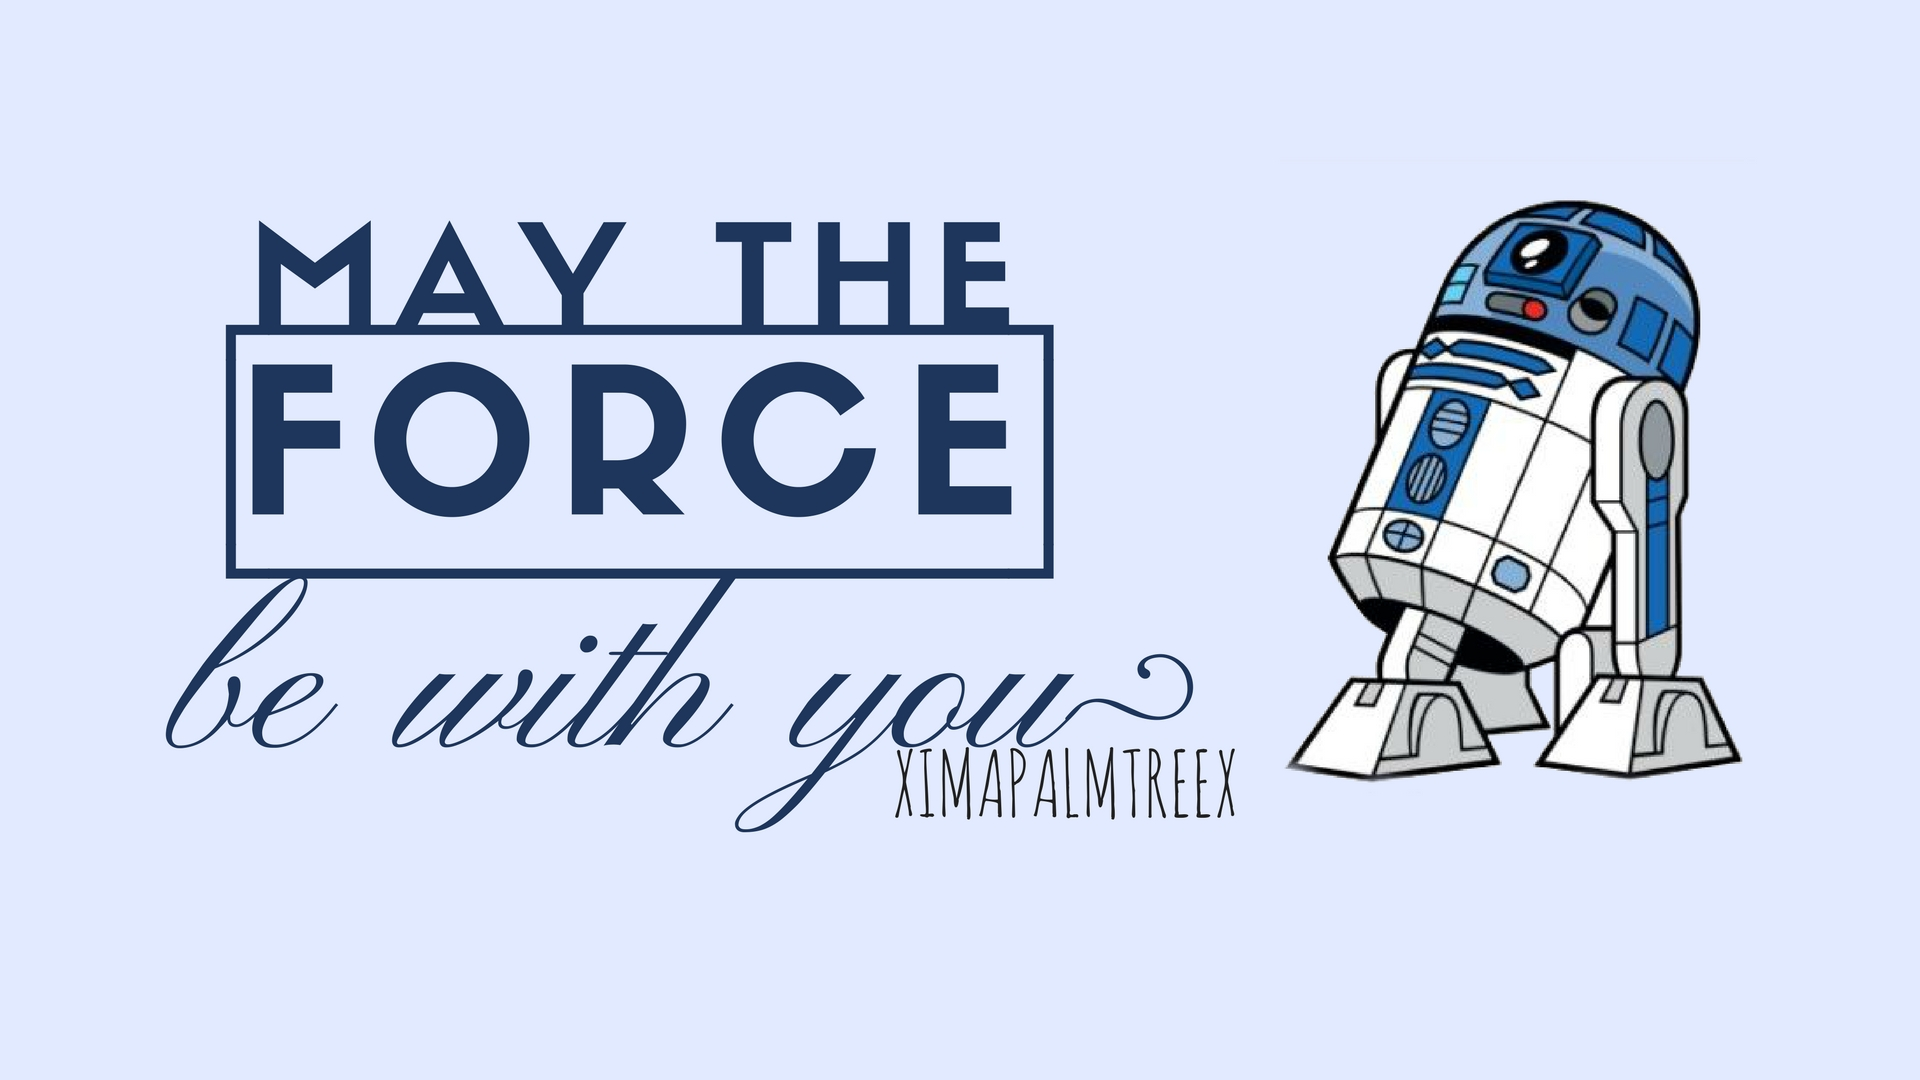 May The Force Be With You Wallpaper By Ximapalmtreex On Deviantart